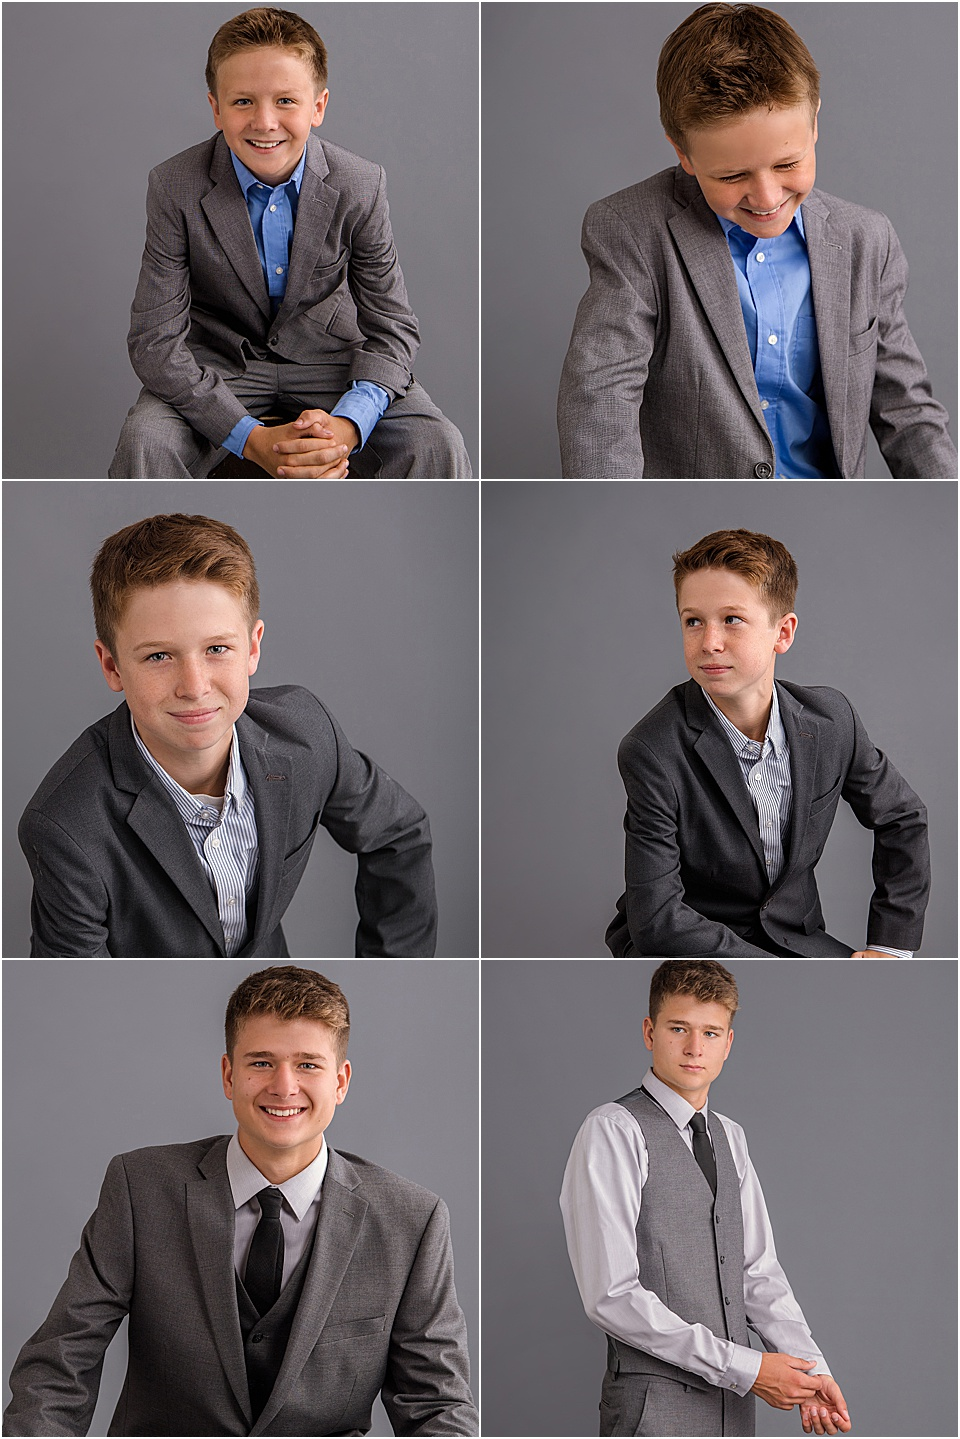 Studio B Portraits specializes in portraits of men and boys of all ages.